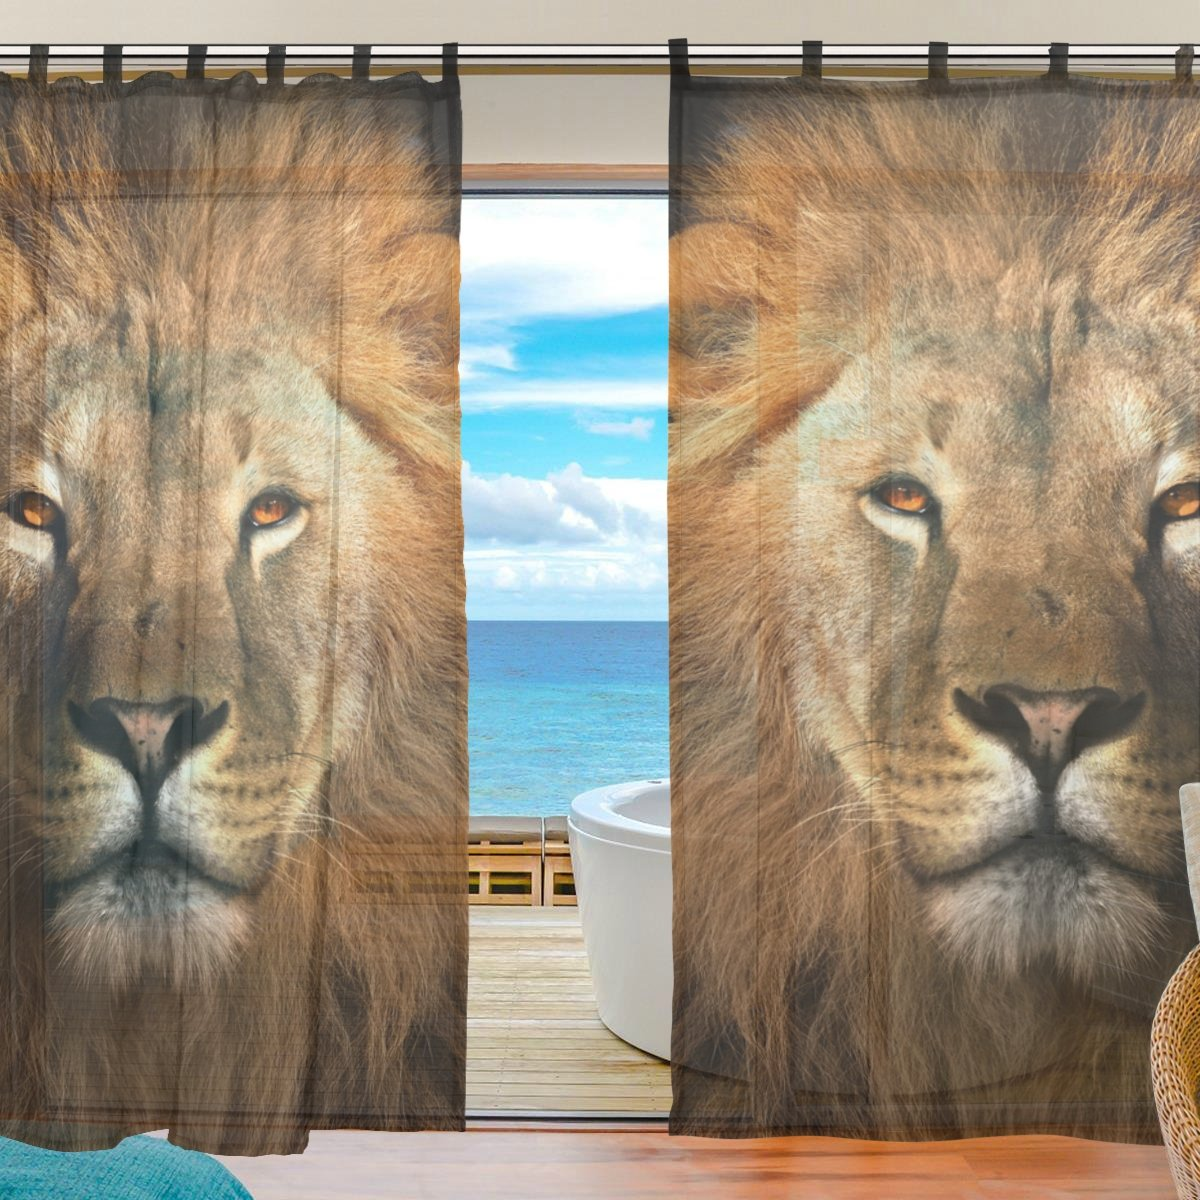 "La Random Lion King Window Sheer Voile Curtains for Living Room Bedroom Kids Room Curtains Polyester 55""Wx78""L Per Panel Set of 2 Panels"